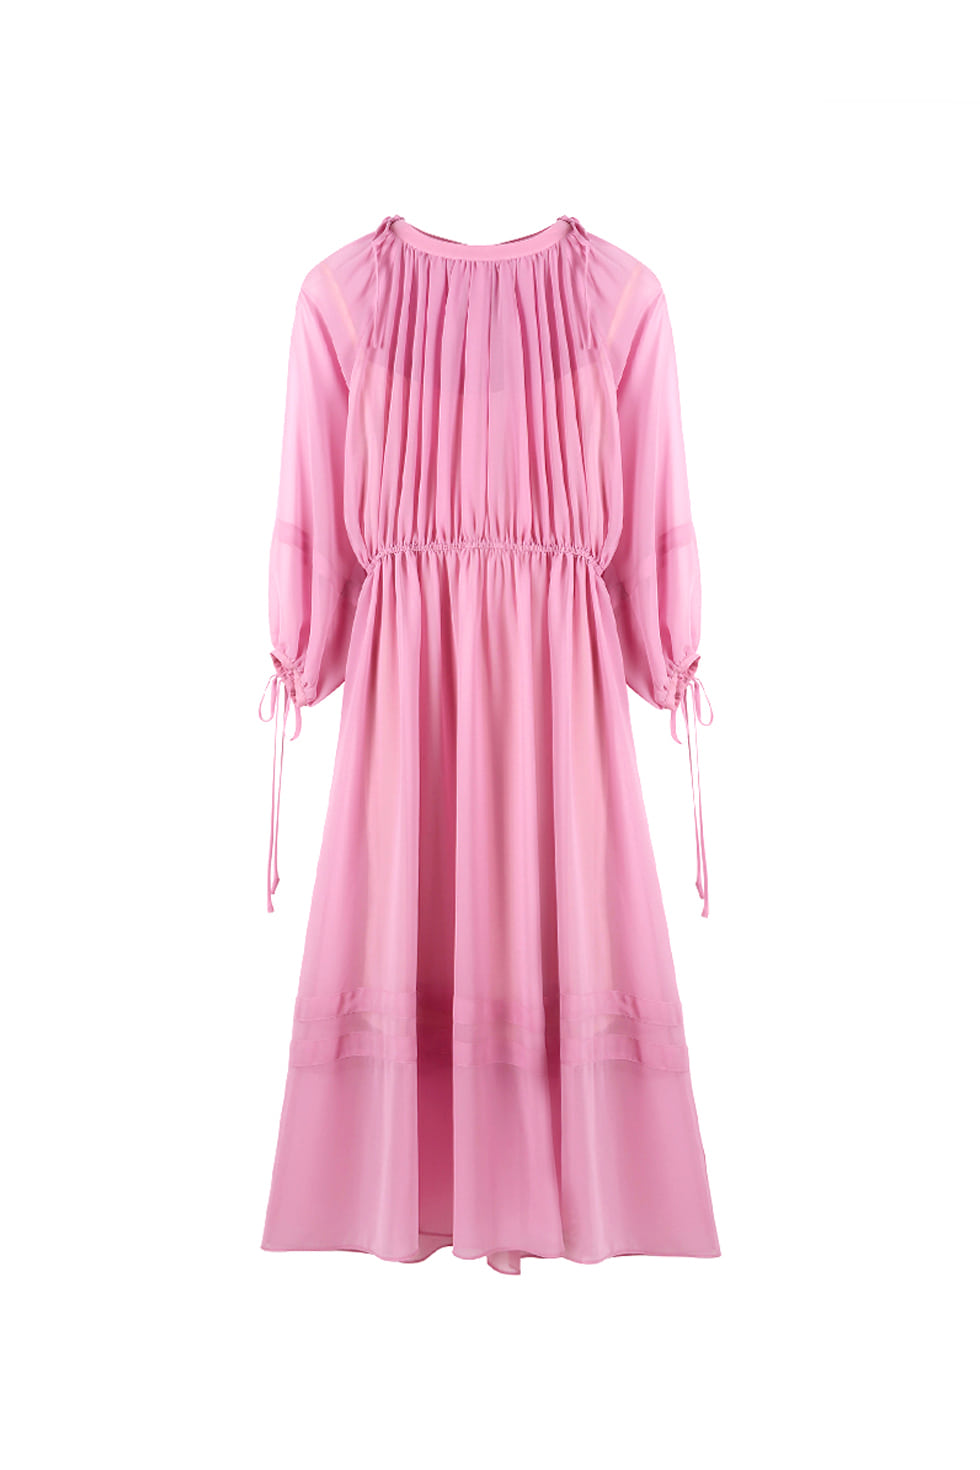 CHIFFON LONG DRESS - PINK